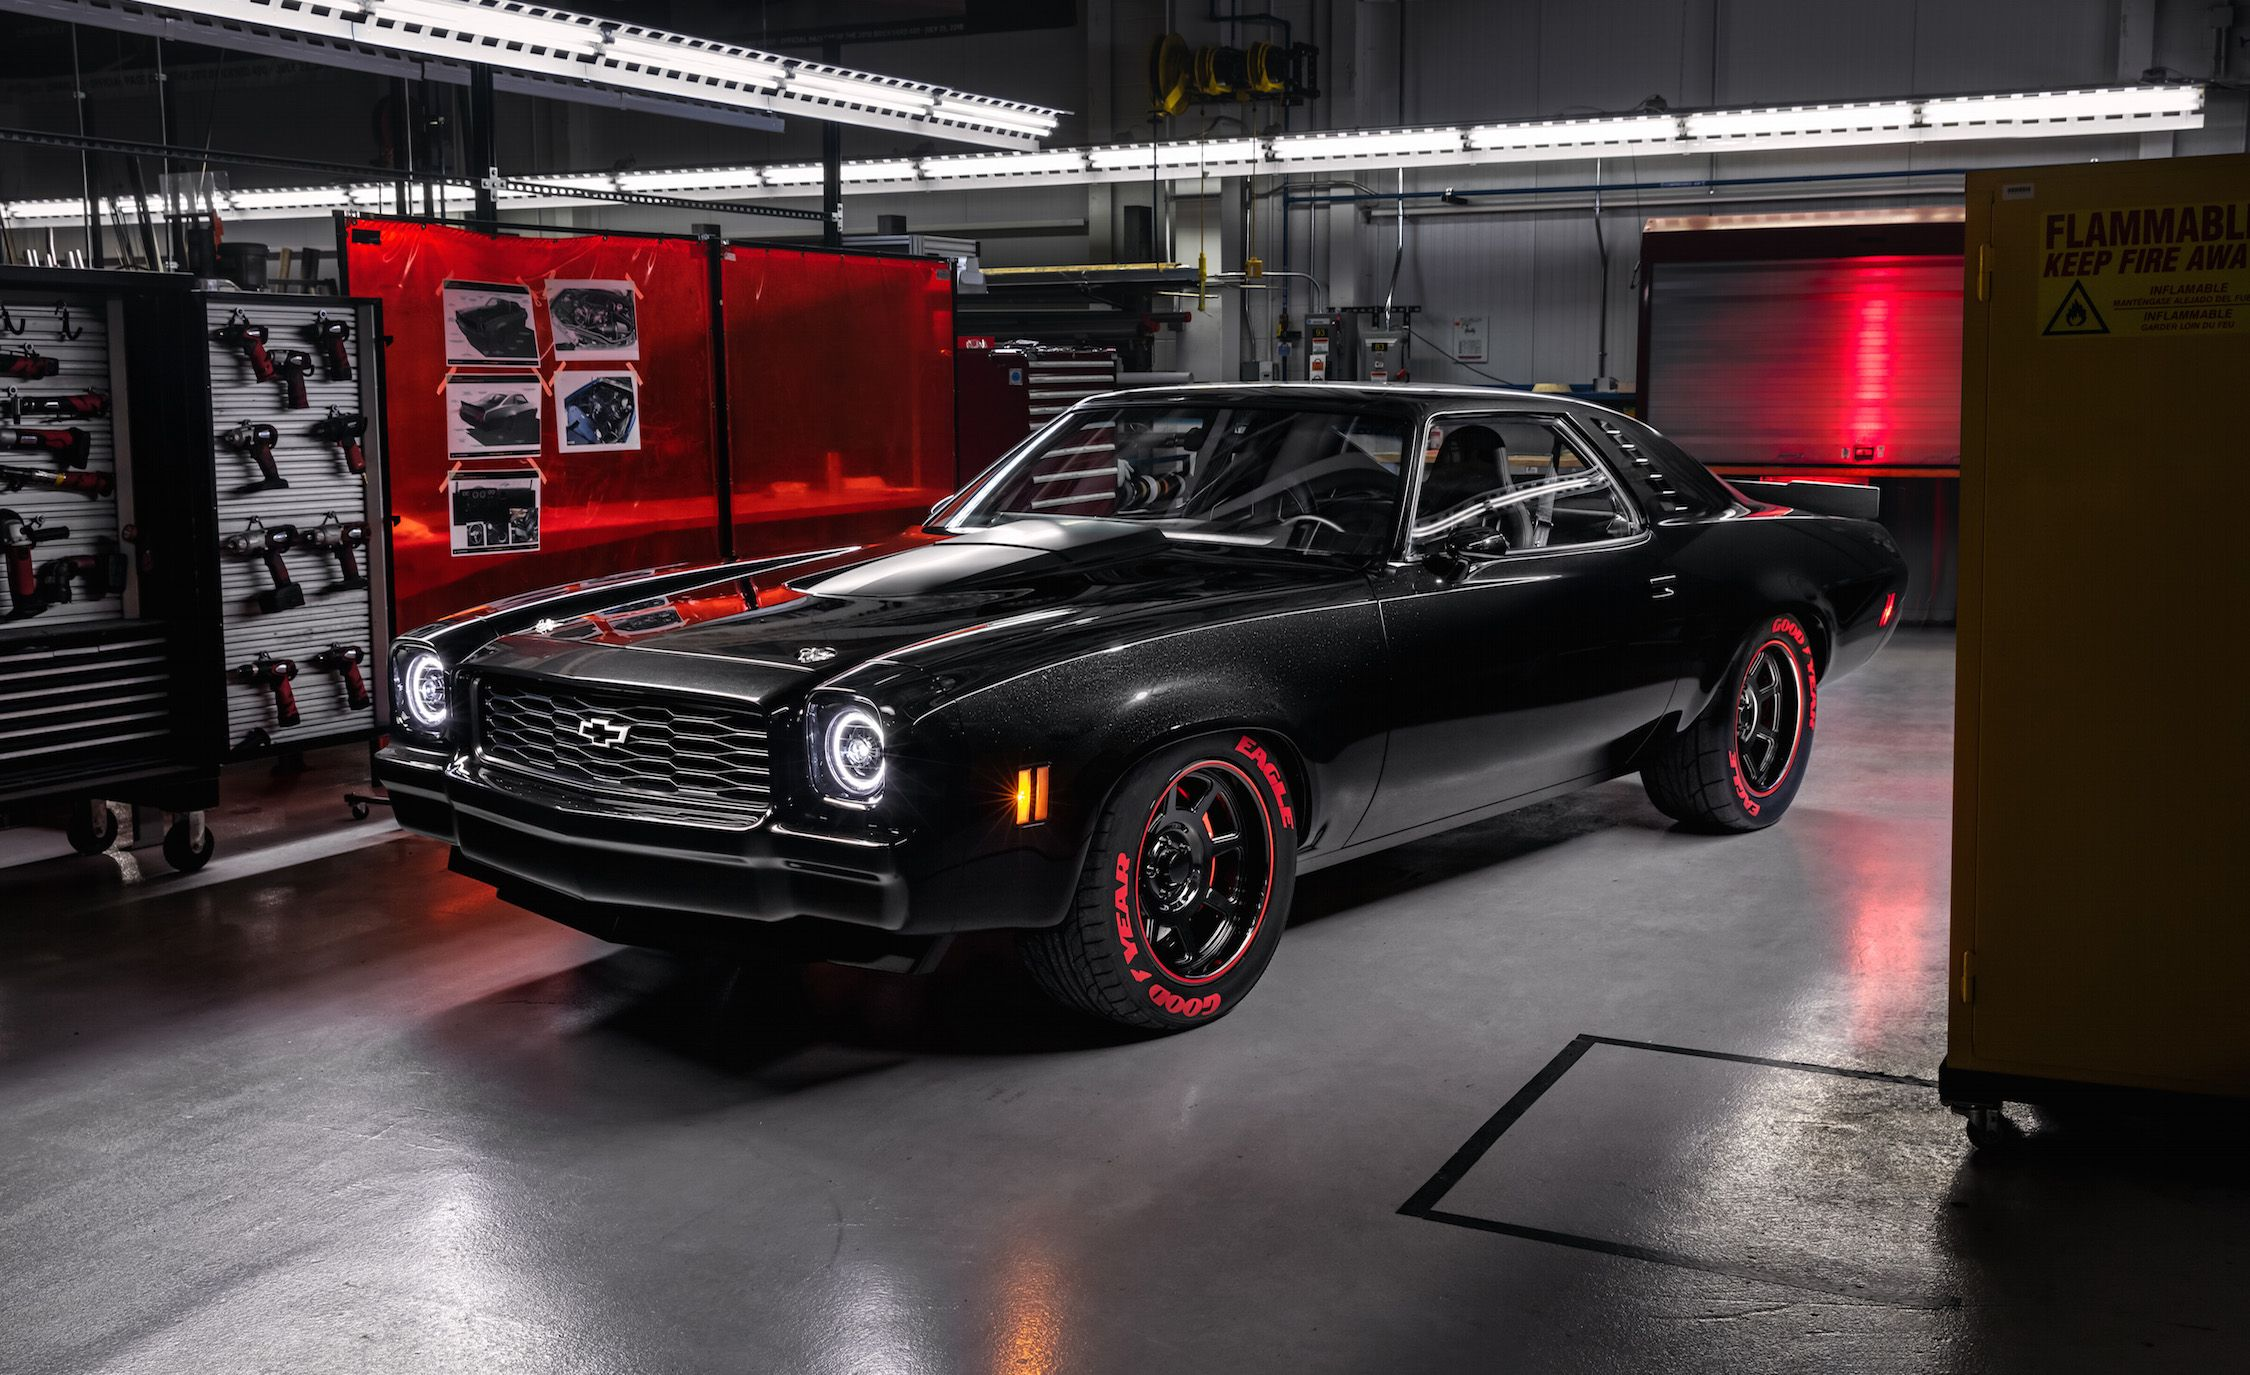 2021 Chevy Chevelle SS Spesification